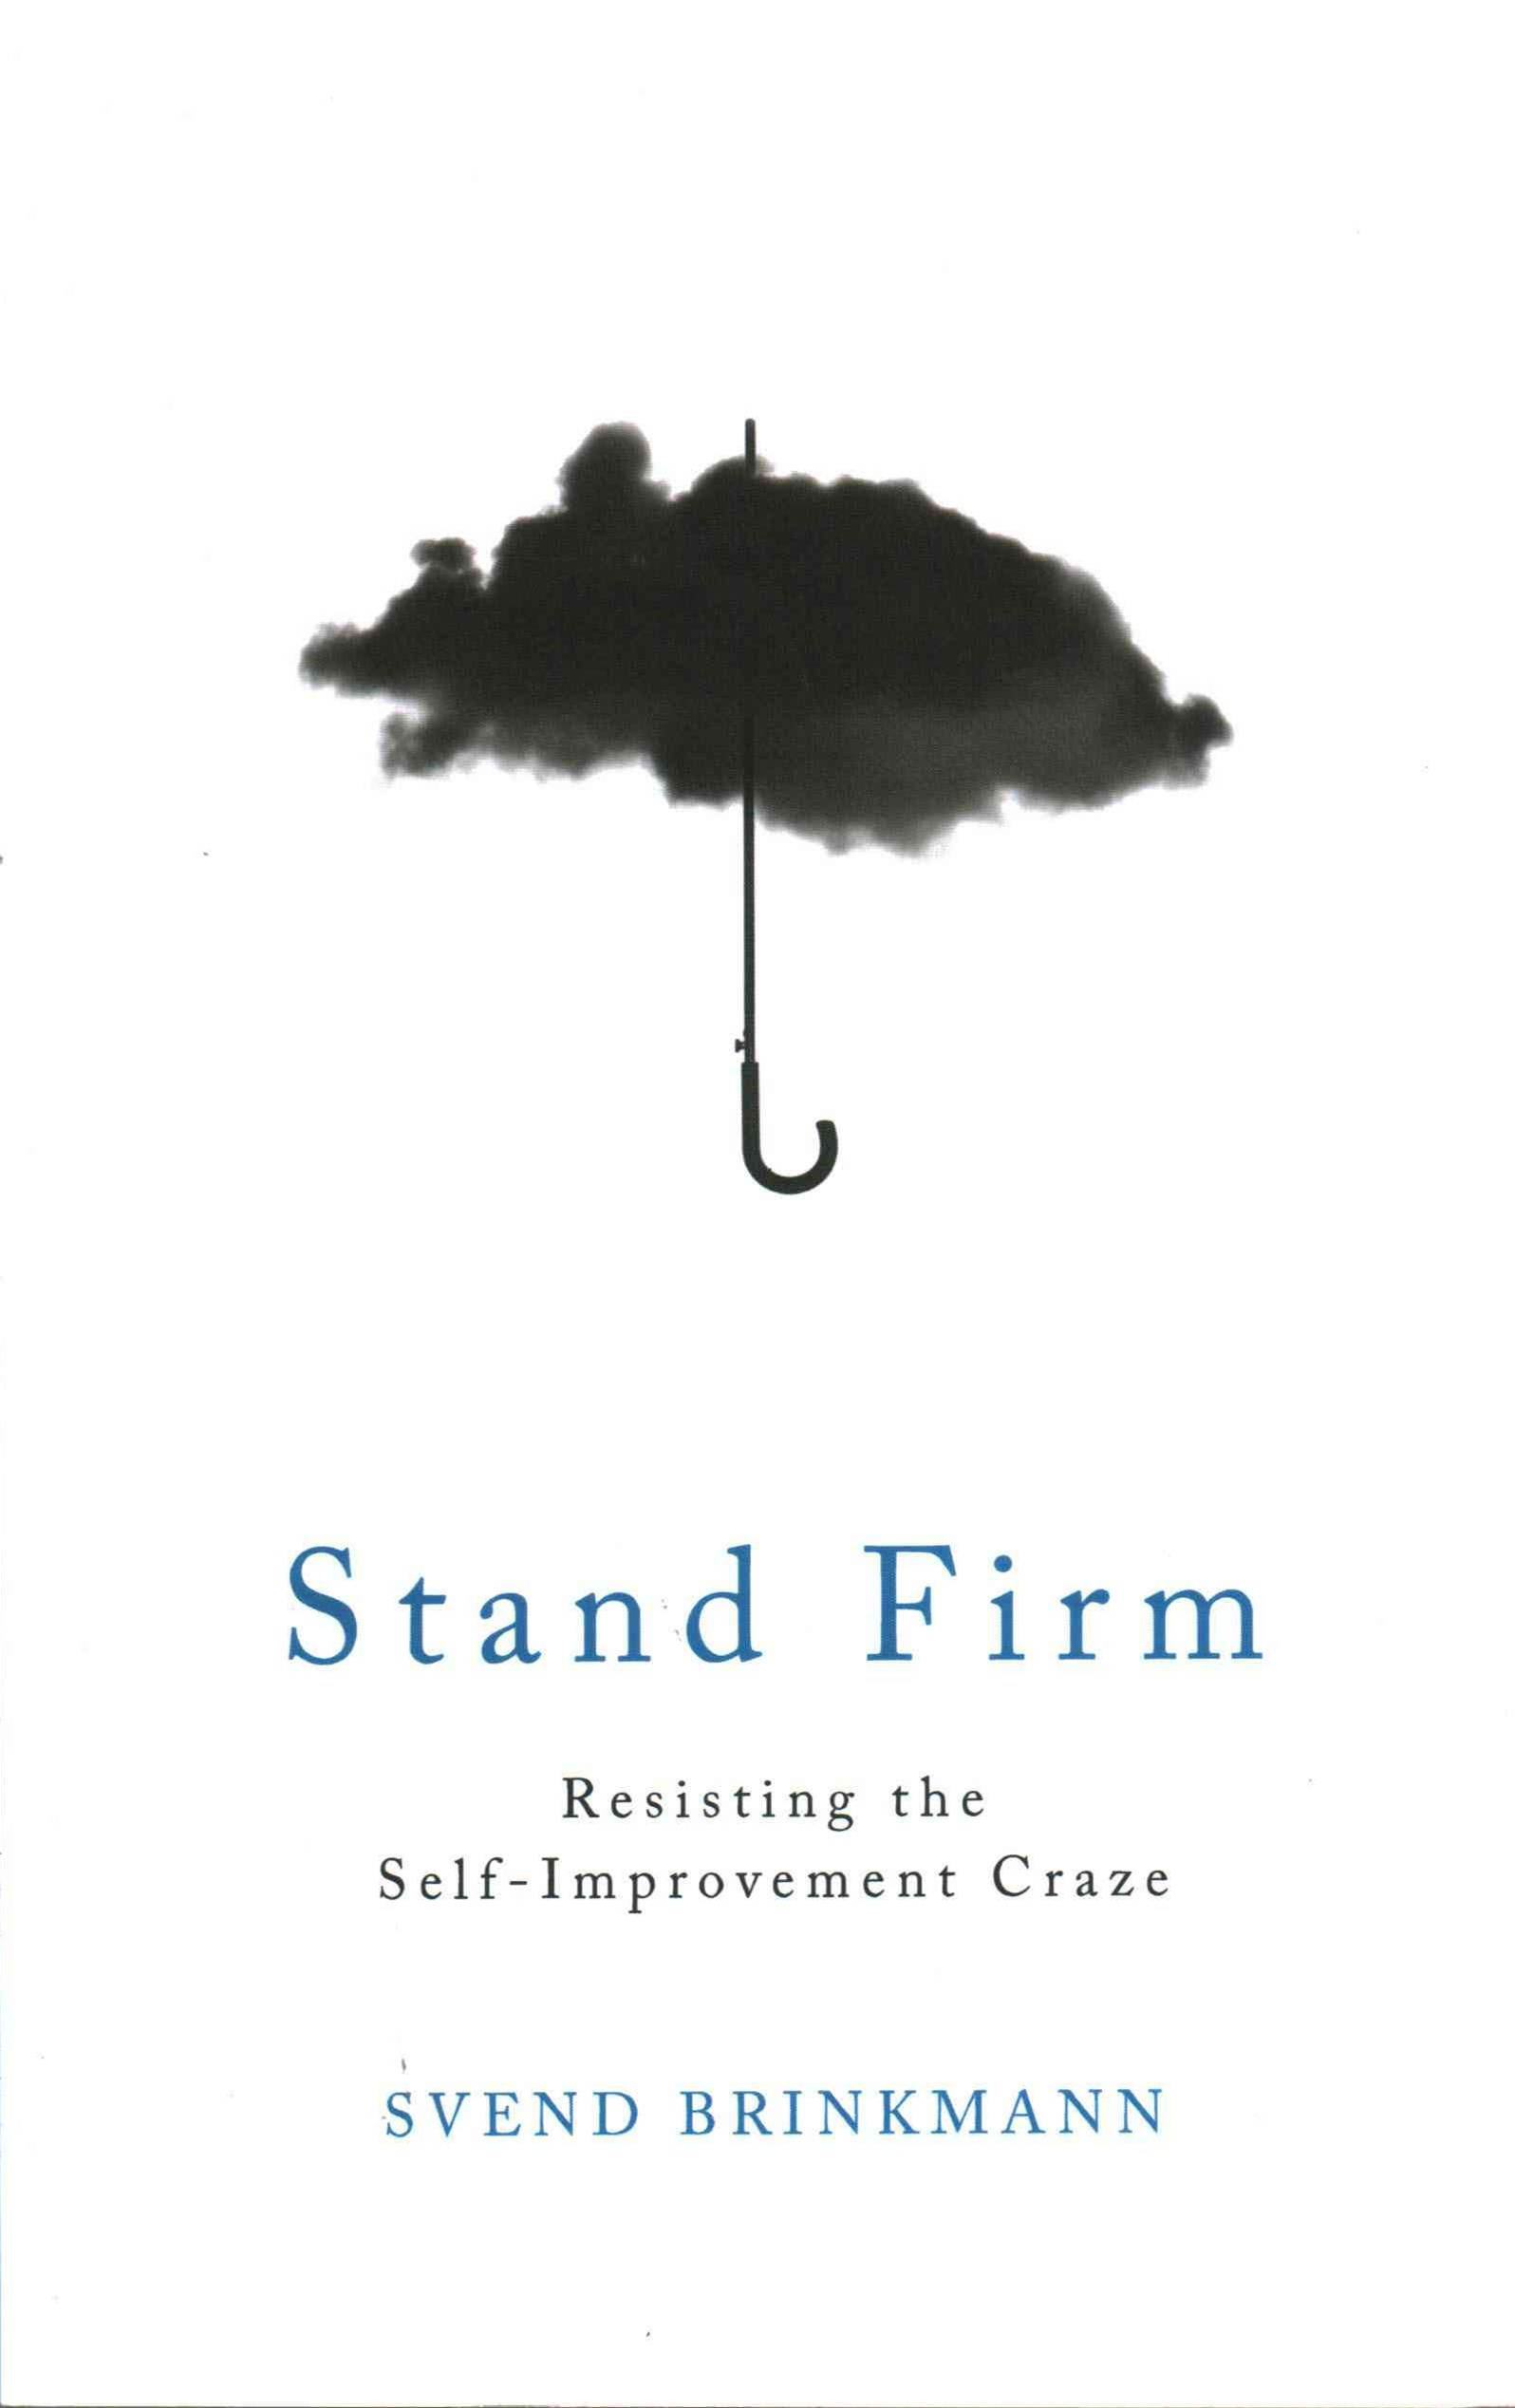 Stand Firm - Resisting the Self-improvement Craze